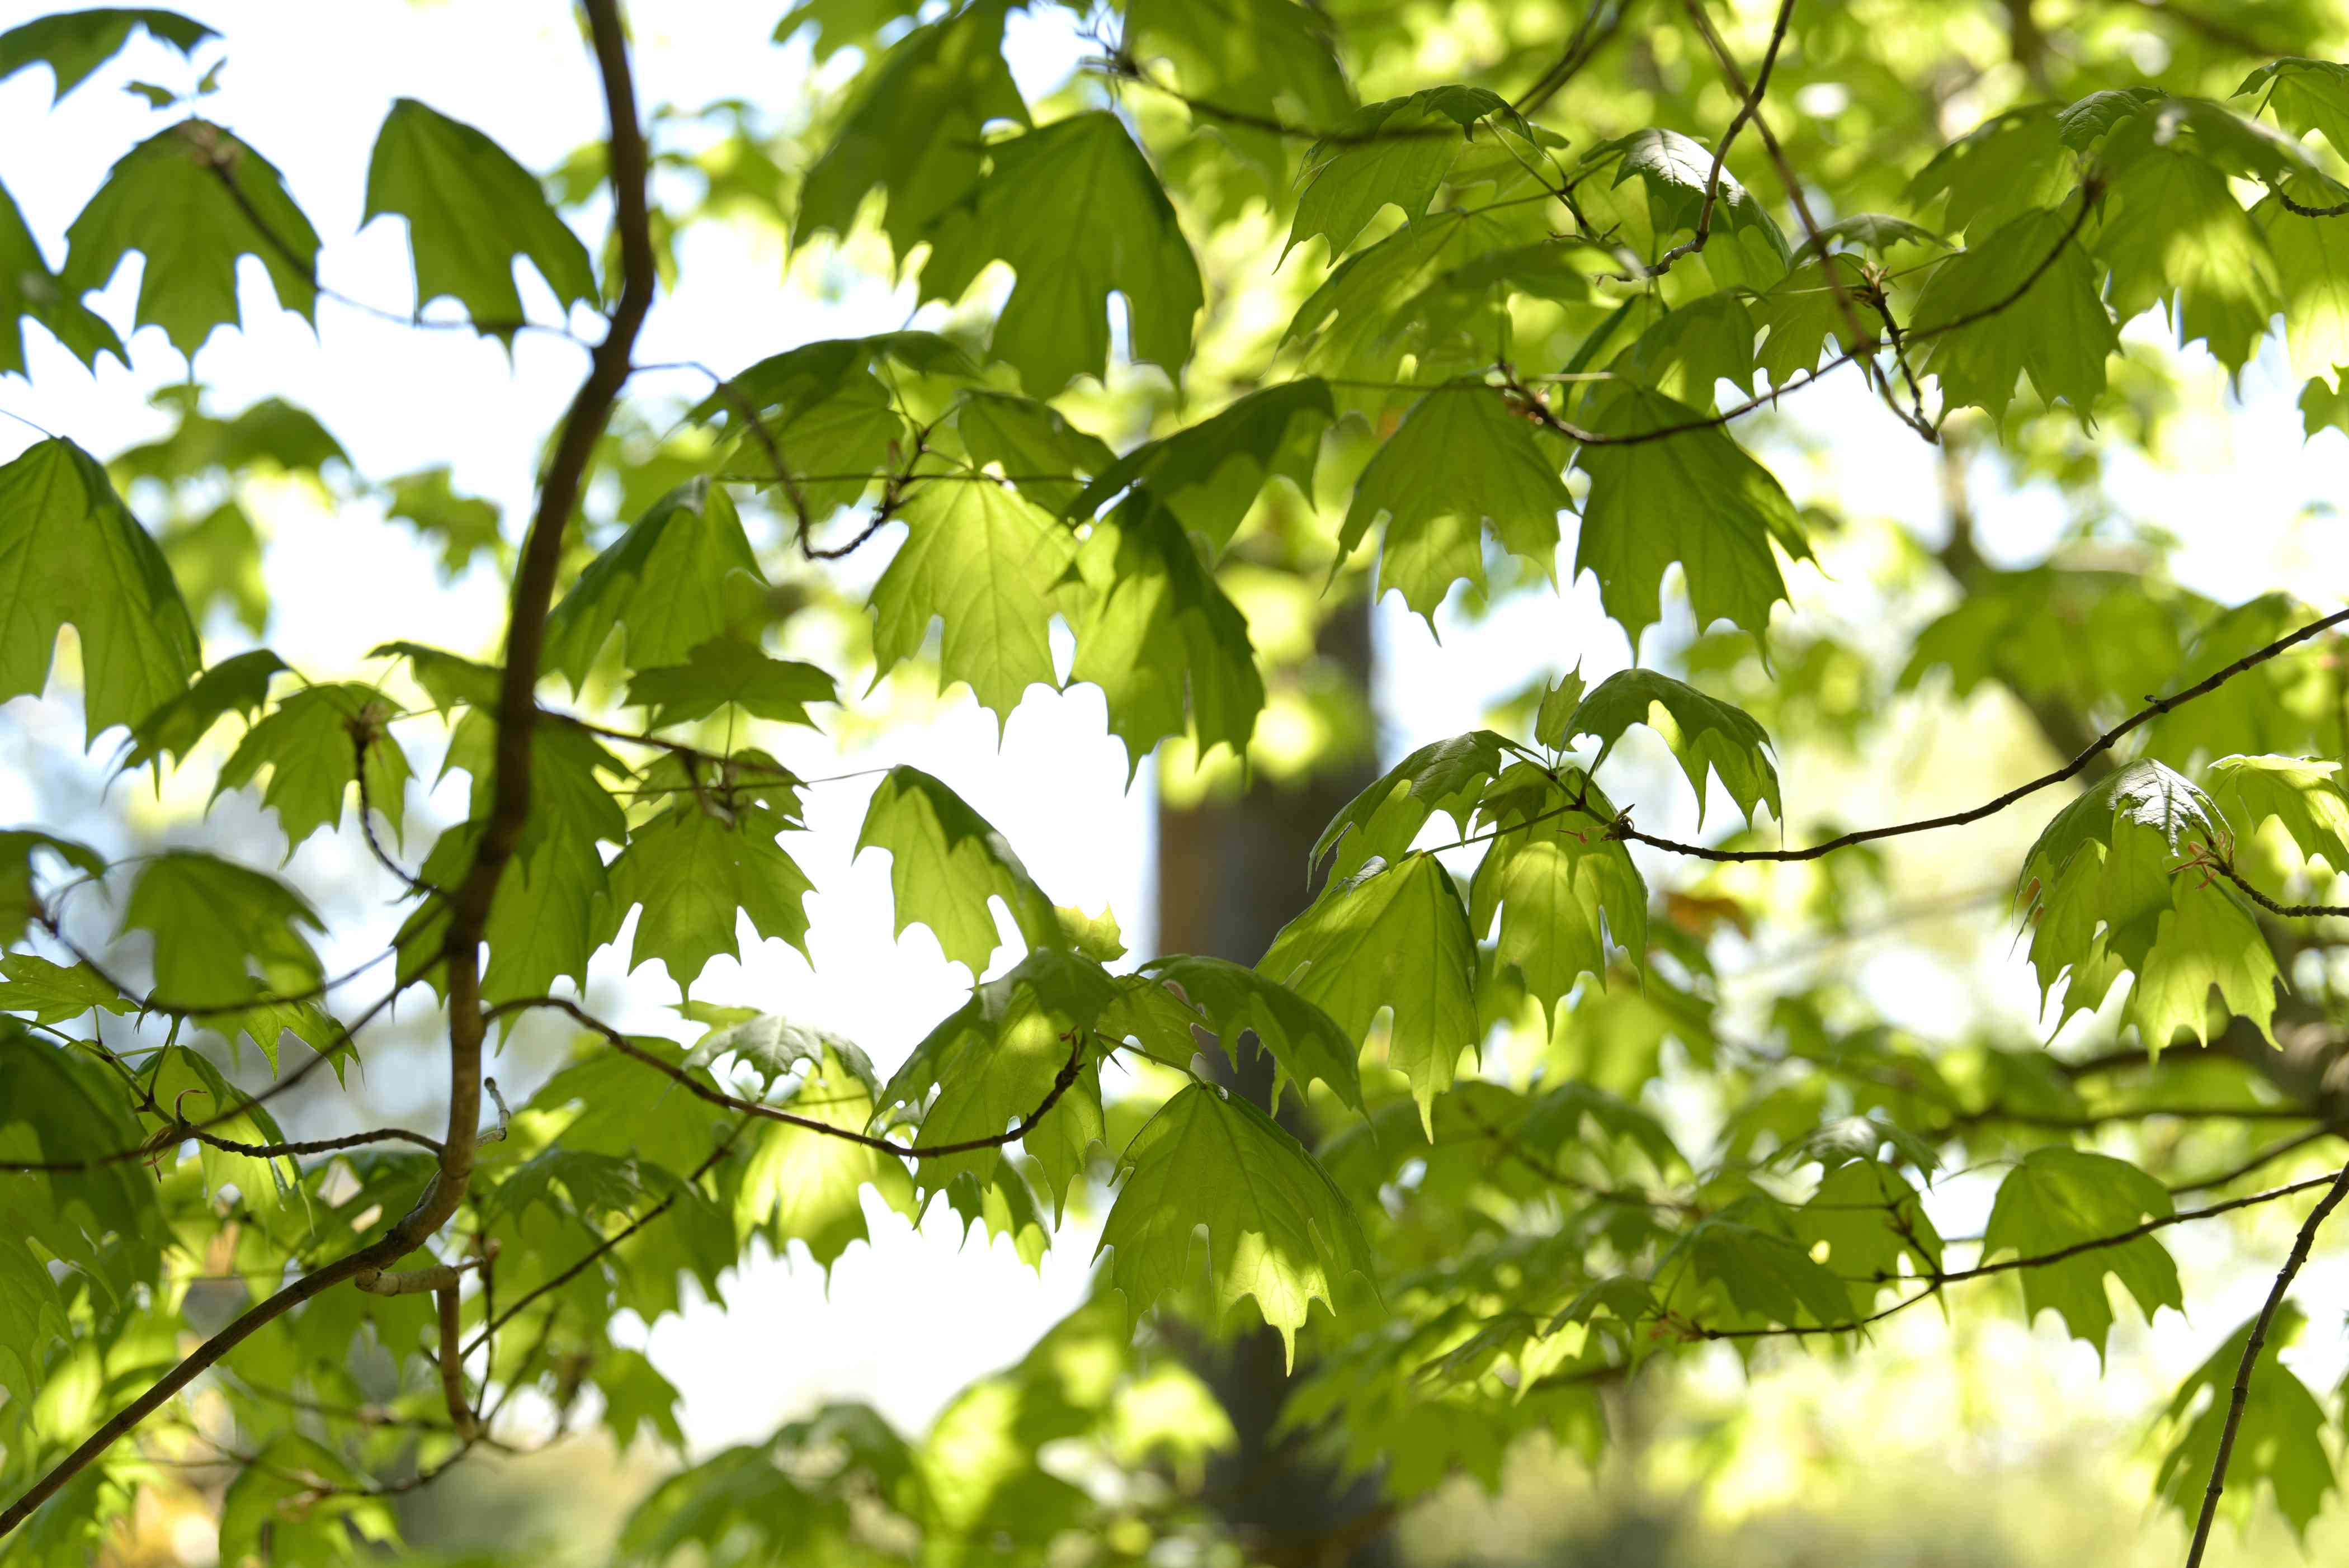 Sugar maple tree branches with bright green leaves in the shade